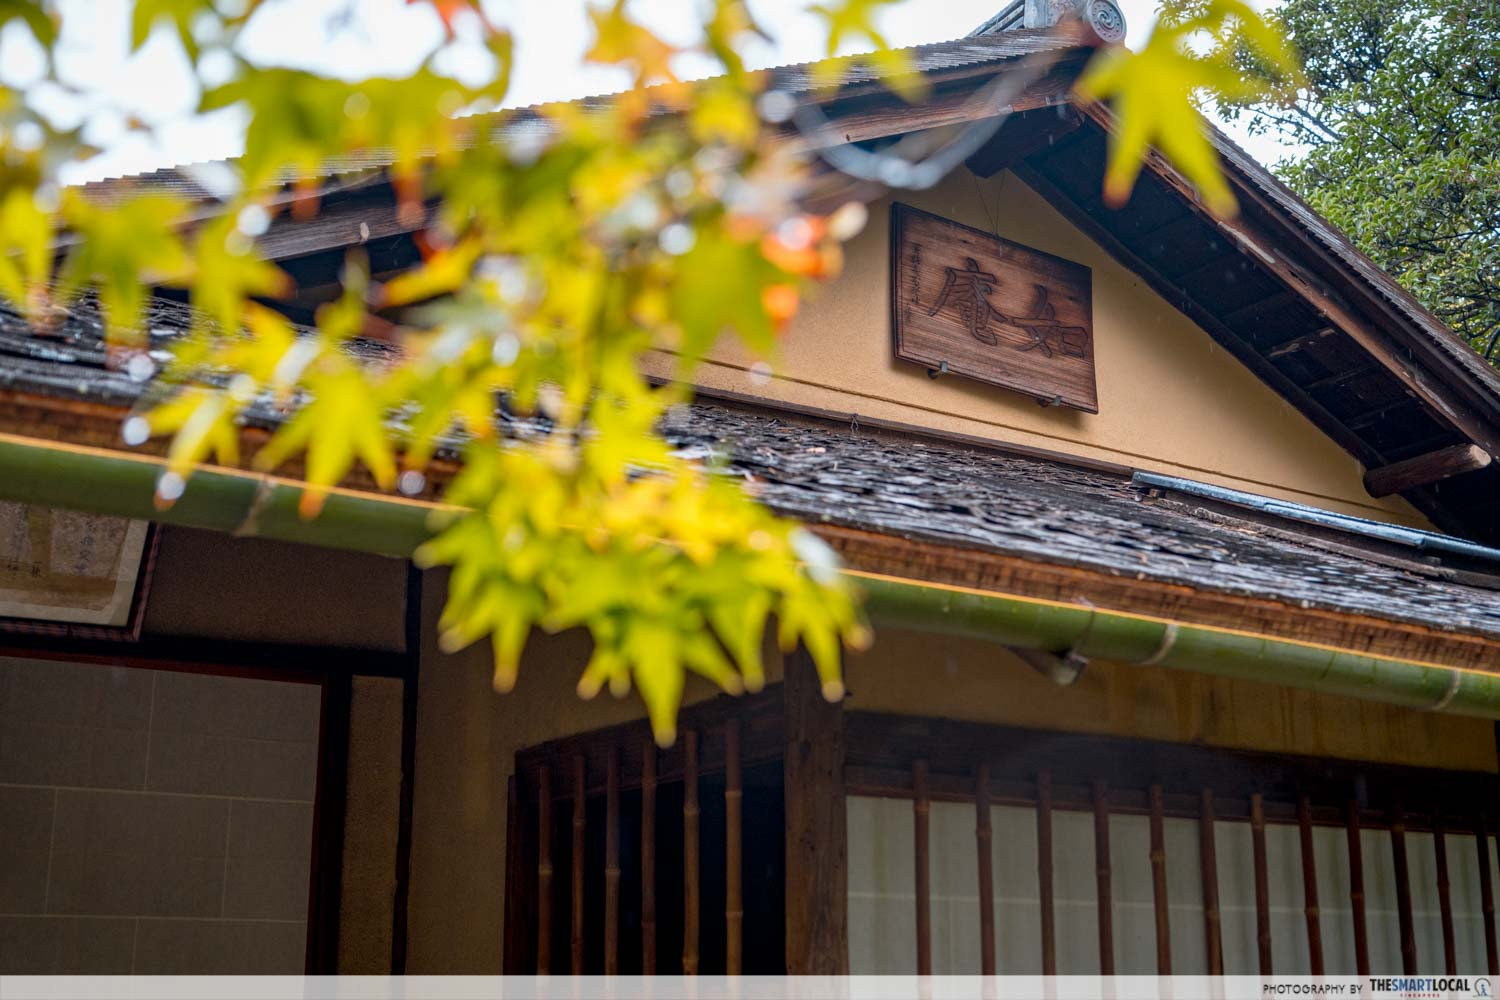 Jō-an Tea Ceremony House facade